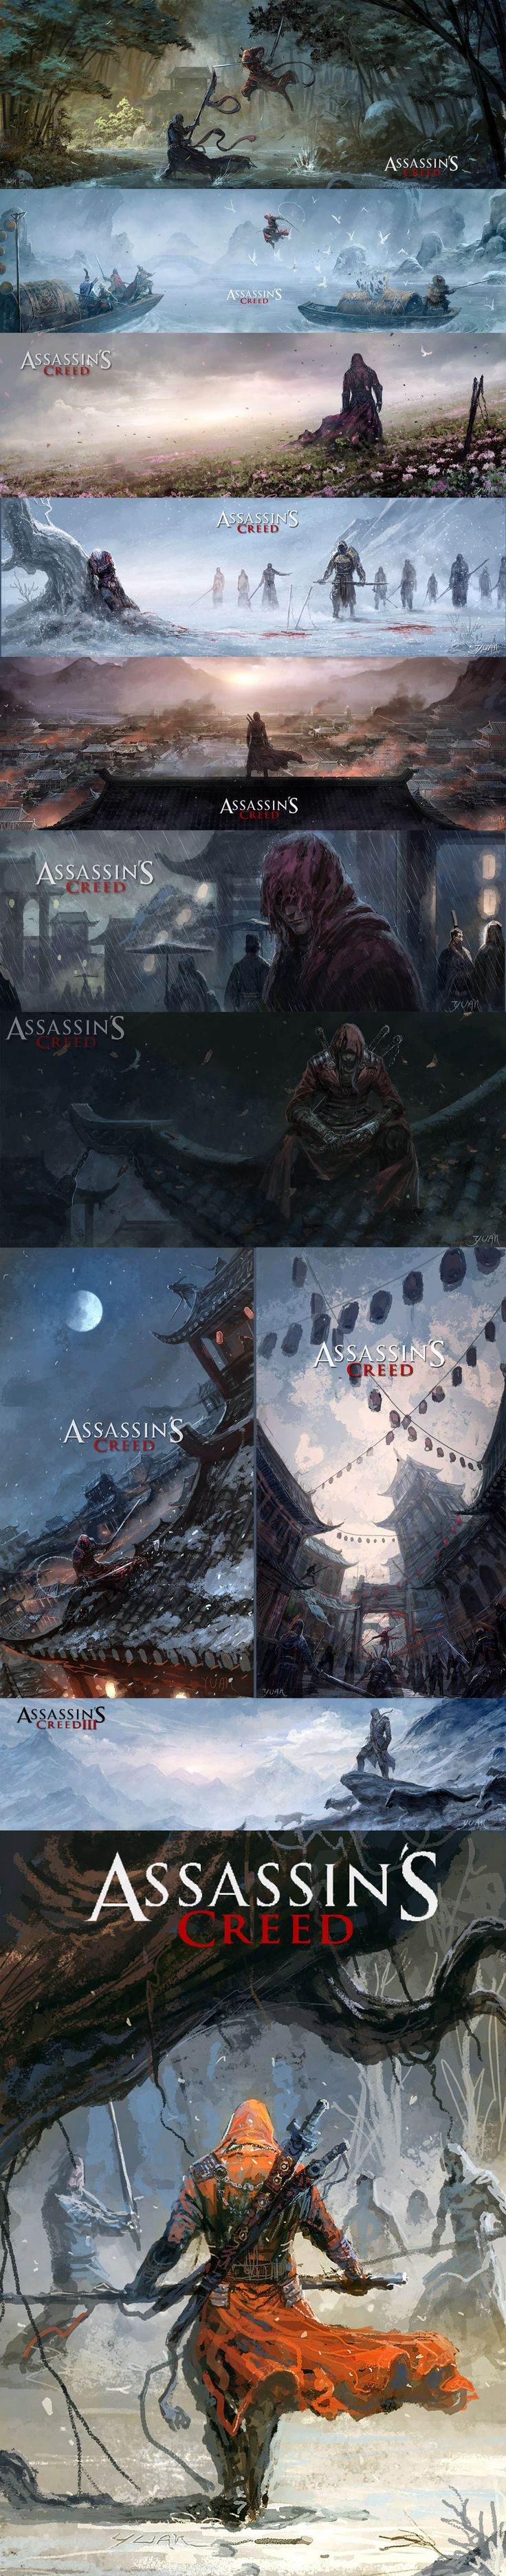 Assassin's Creed - Another Tale by ChaoyuanXu on deviantART